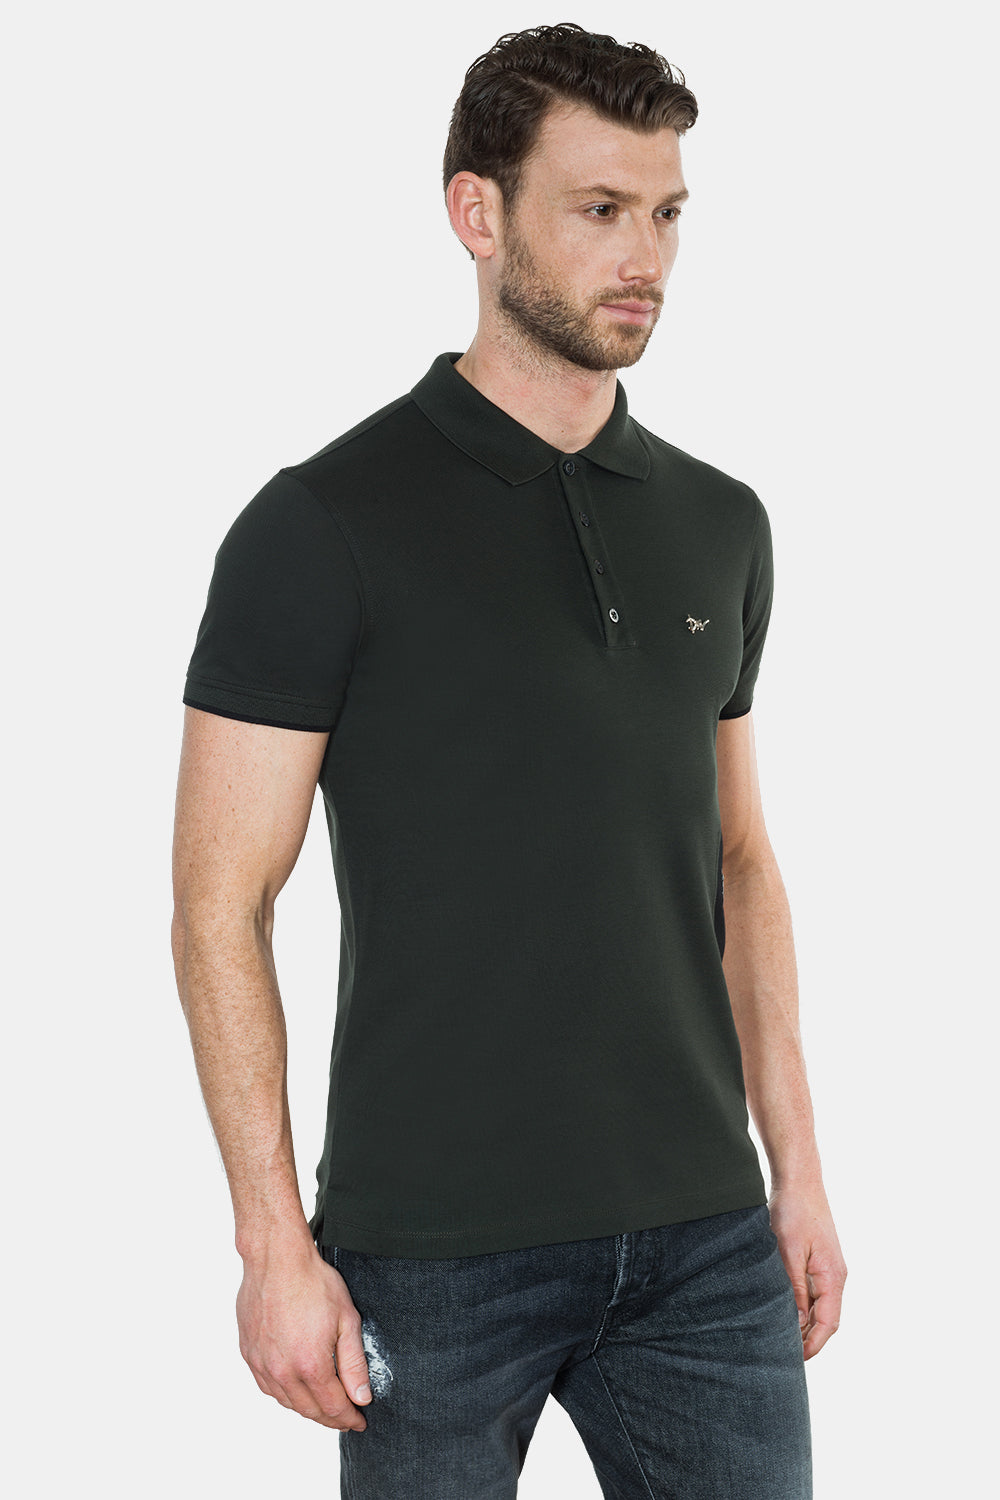 YOKE ANCHORS POLO - DIMORAL OFFICIAL